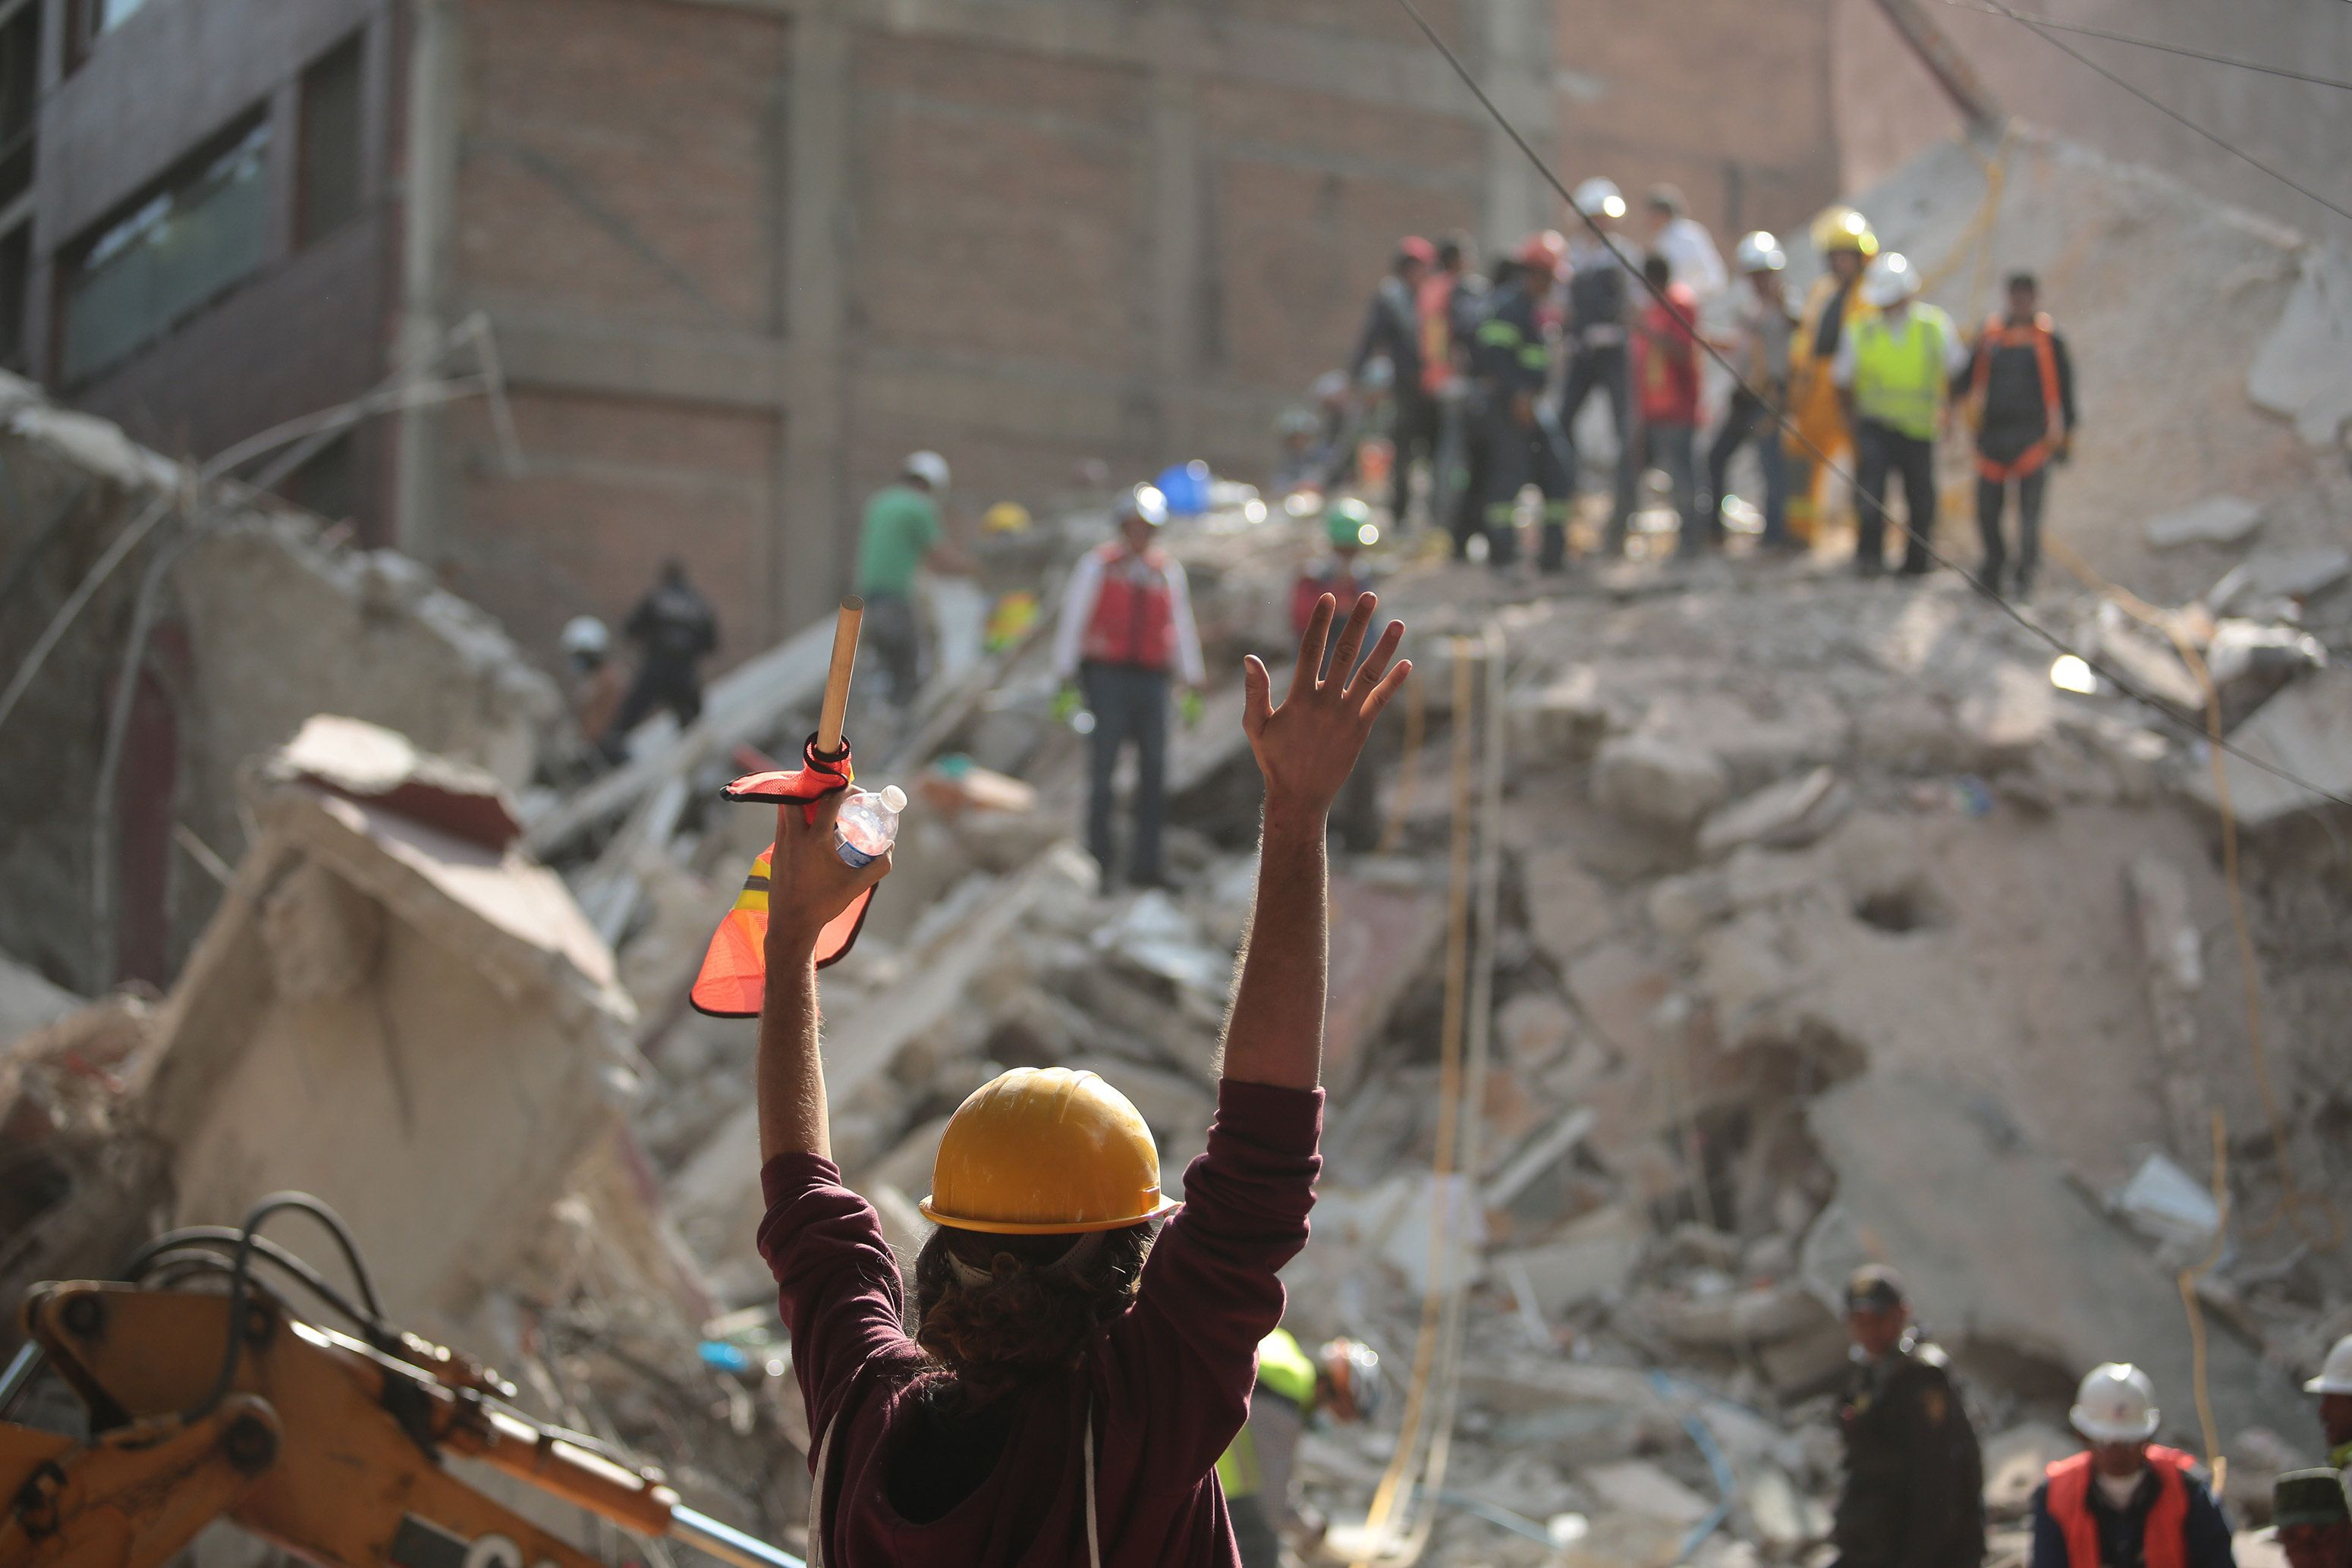 Powerful quake of magnitude 7.1 hit central Mexico killing 138 people